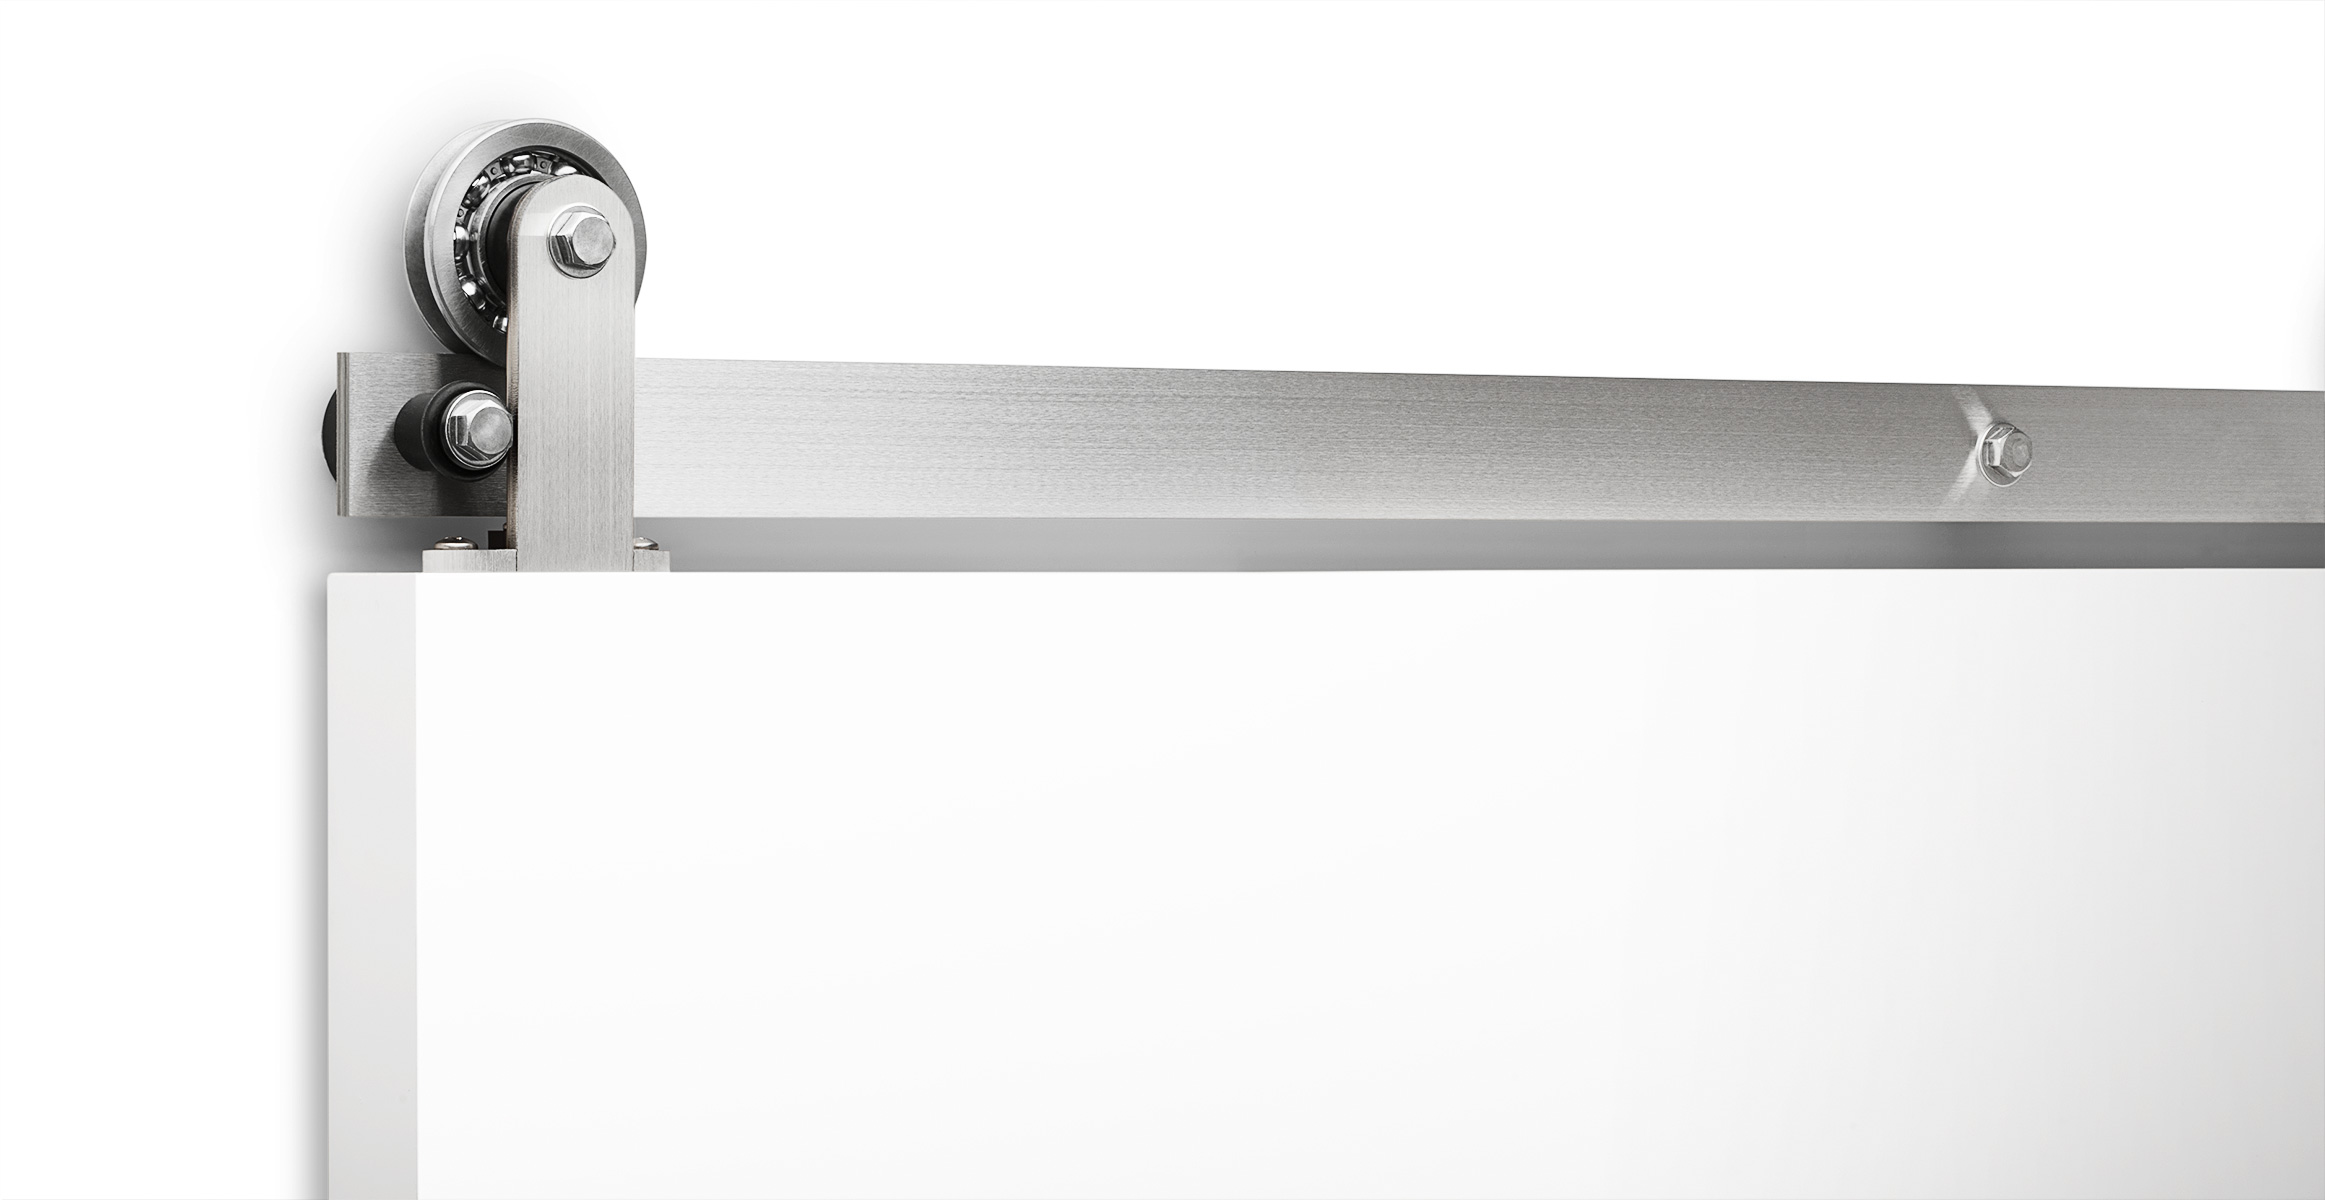 Axel-flat-track-sliding-barn-door-hardware-in-stainless-steel